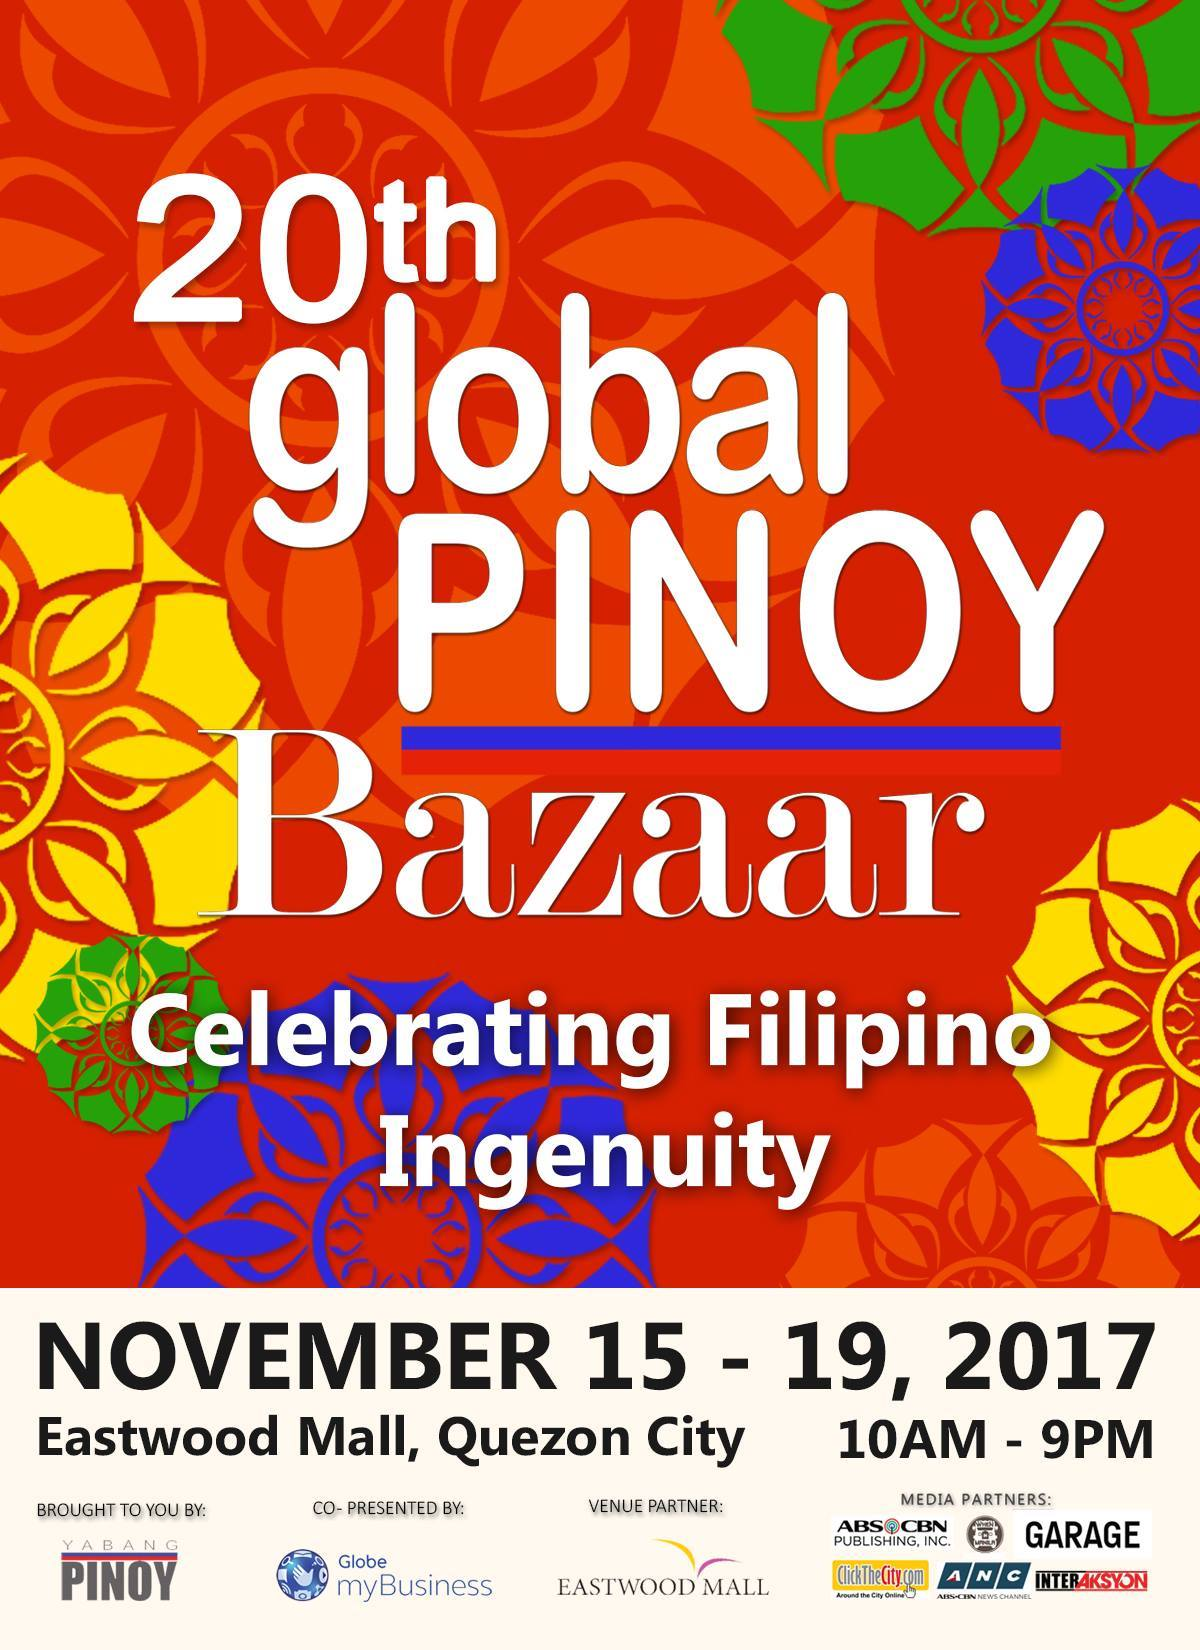 20th Global Pinoy Bazaar at Eastwood Mall